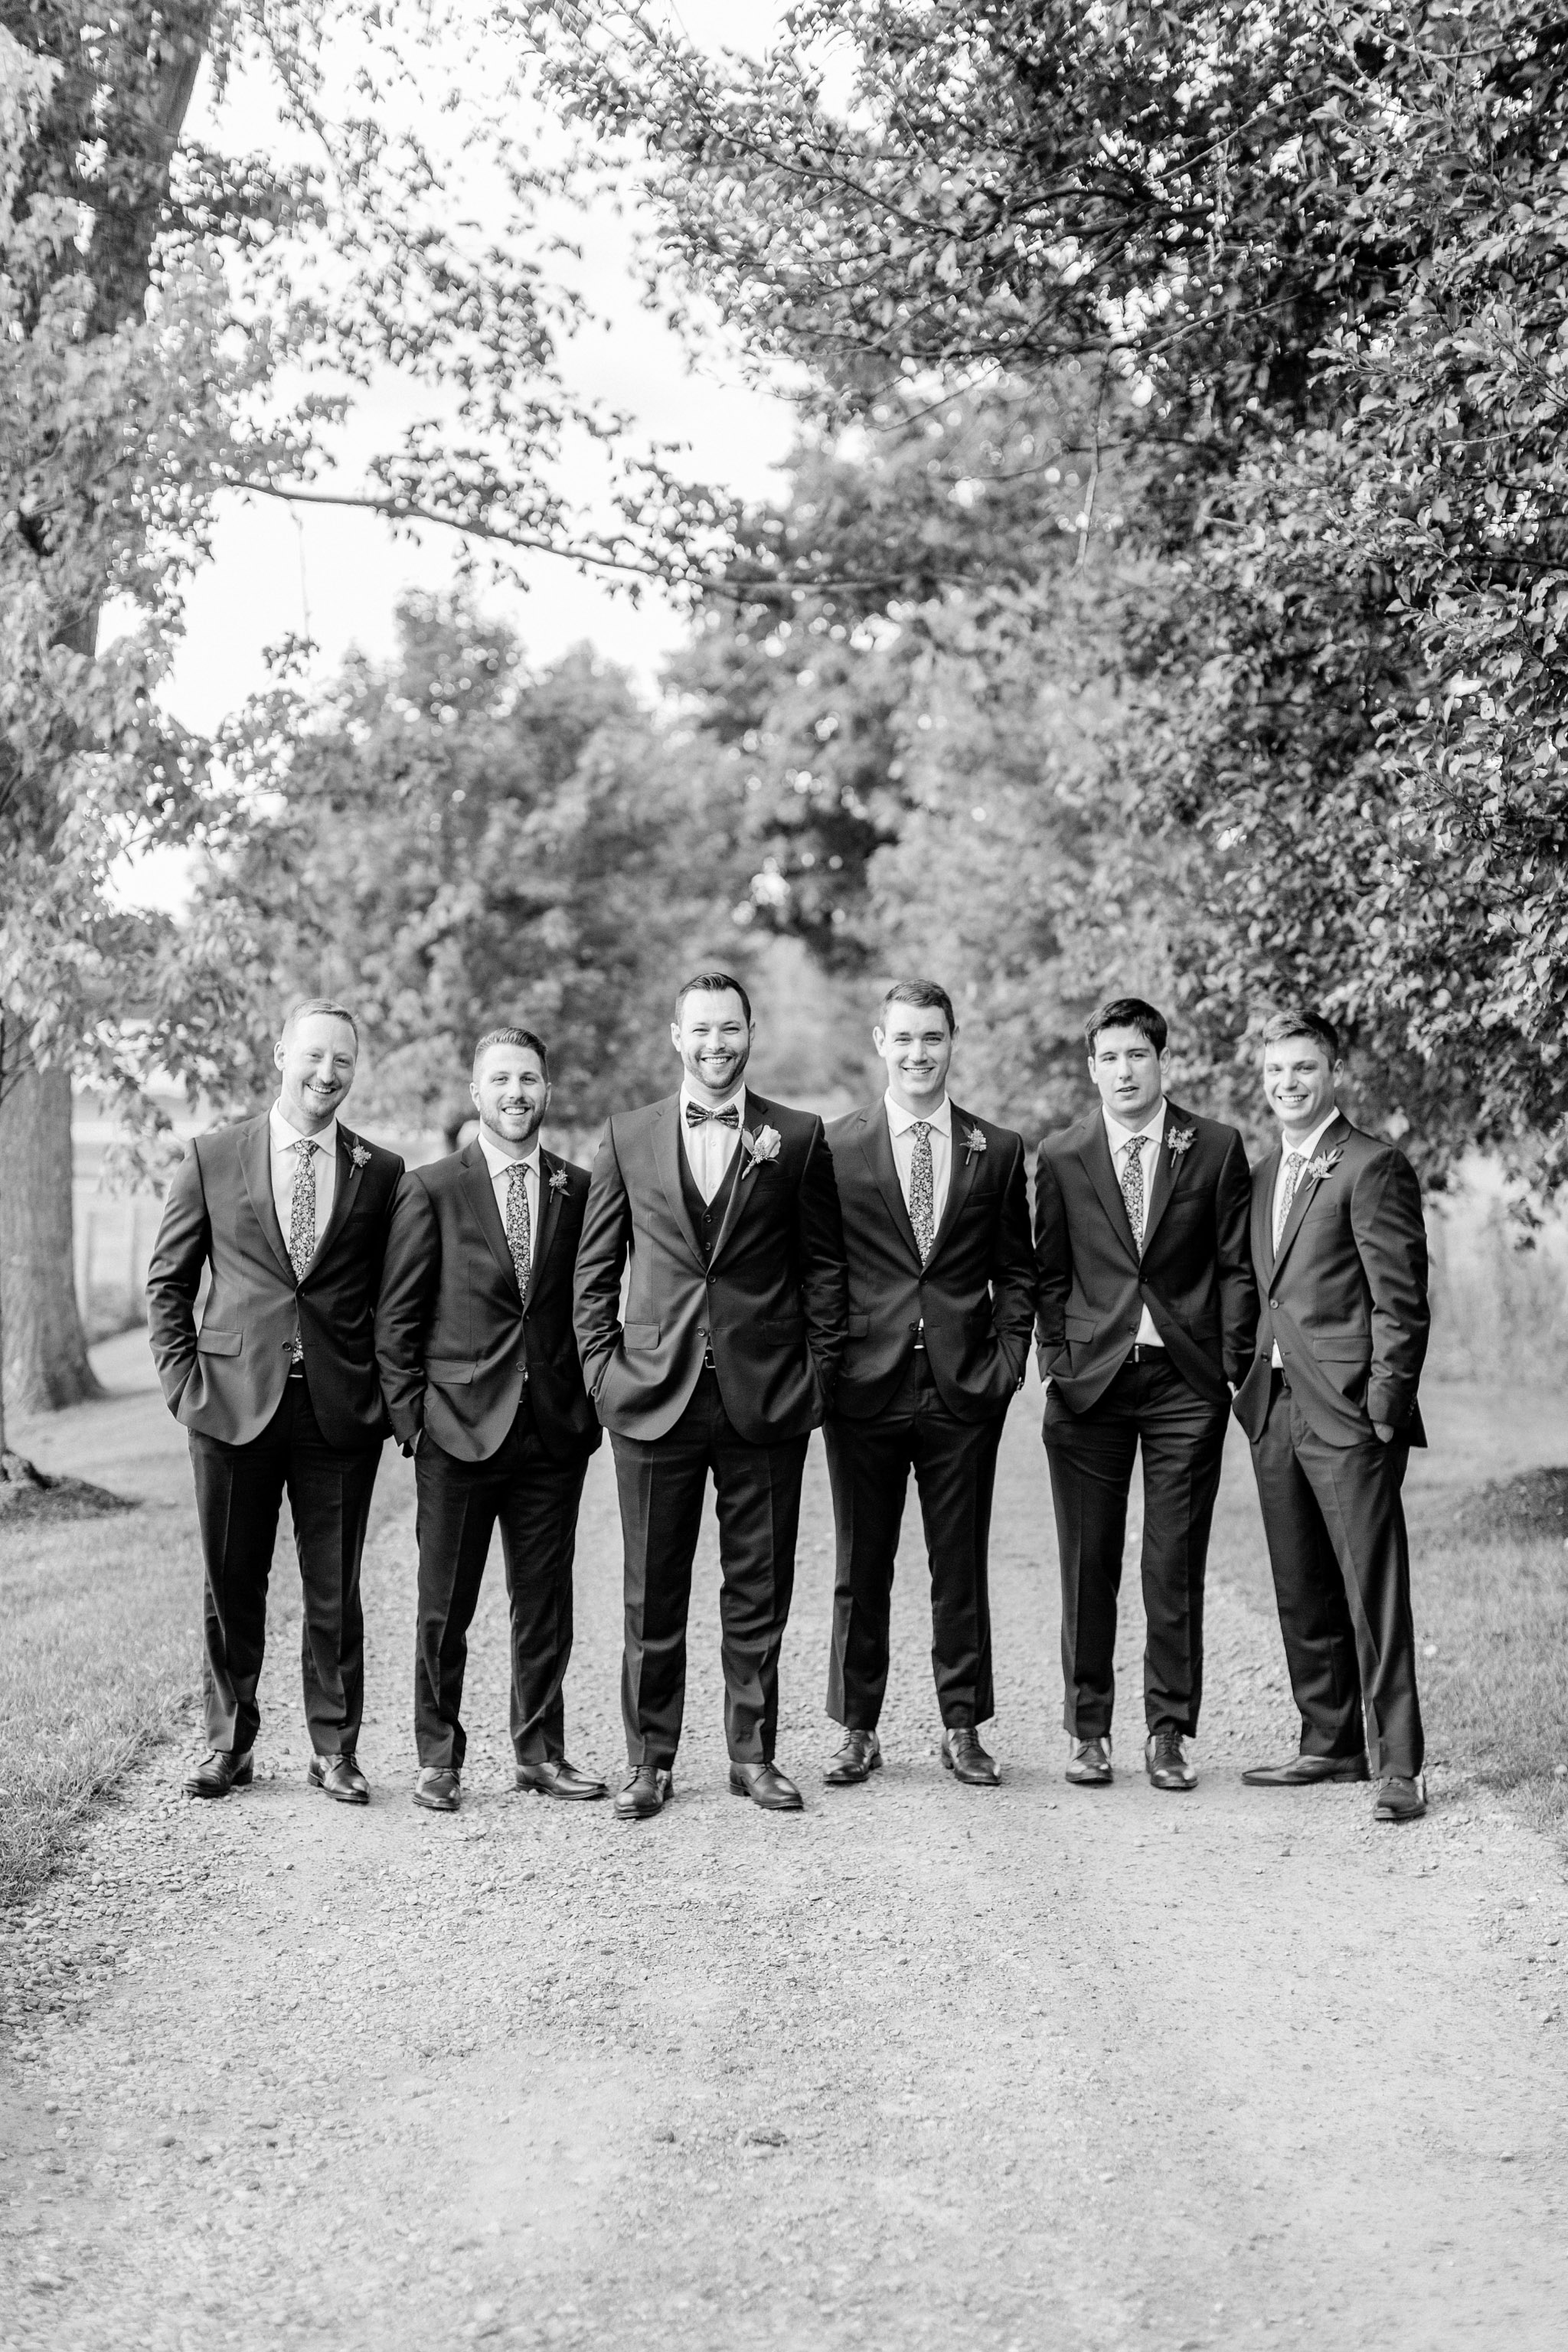 Groomsmen wearing navy blue suits.